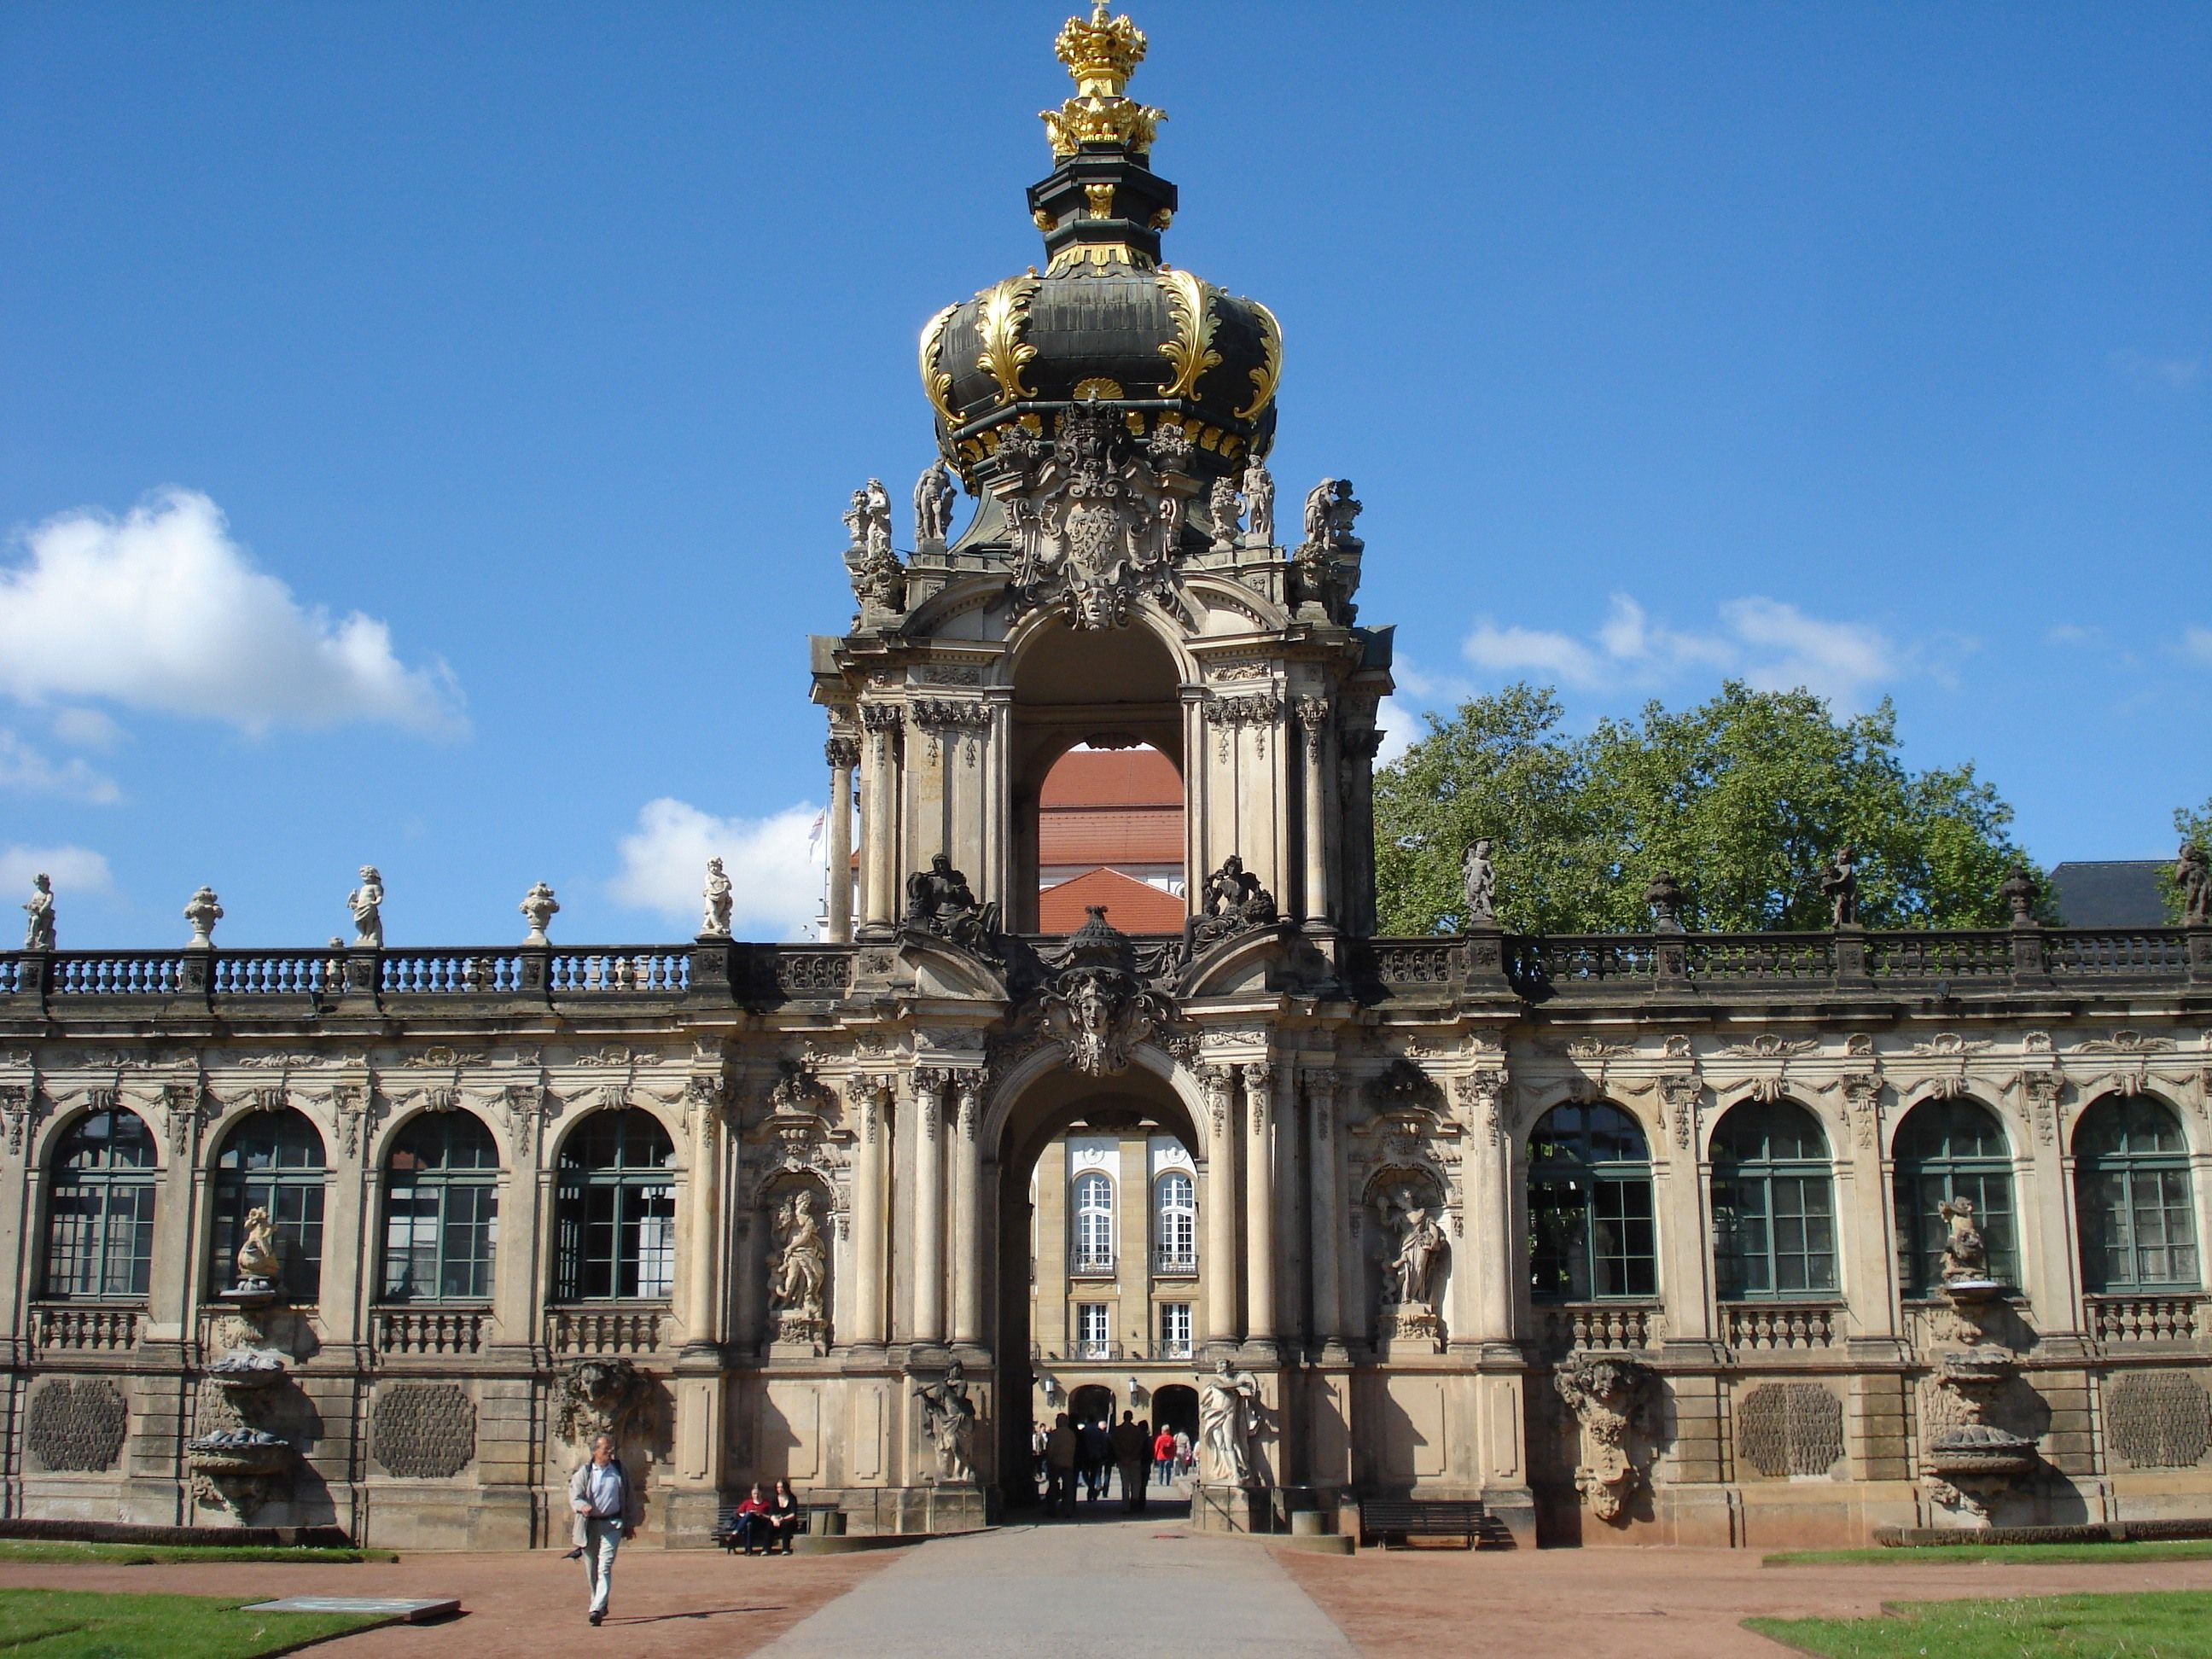 German Rococo Germany The Towering Gateway The Kronentor The Zwinger 1713 Dresden By Matthaus Daniel Popp Baroque Architecture Artistic Movement Rococo